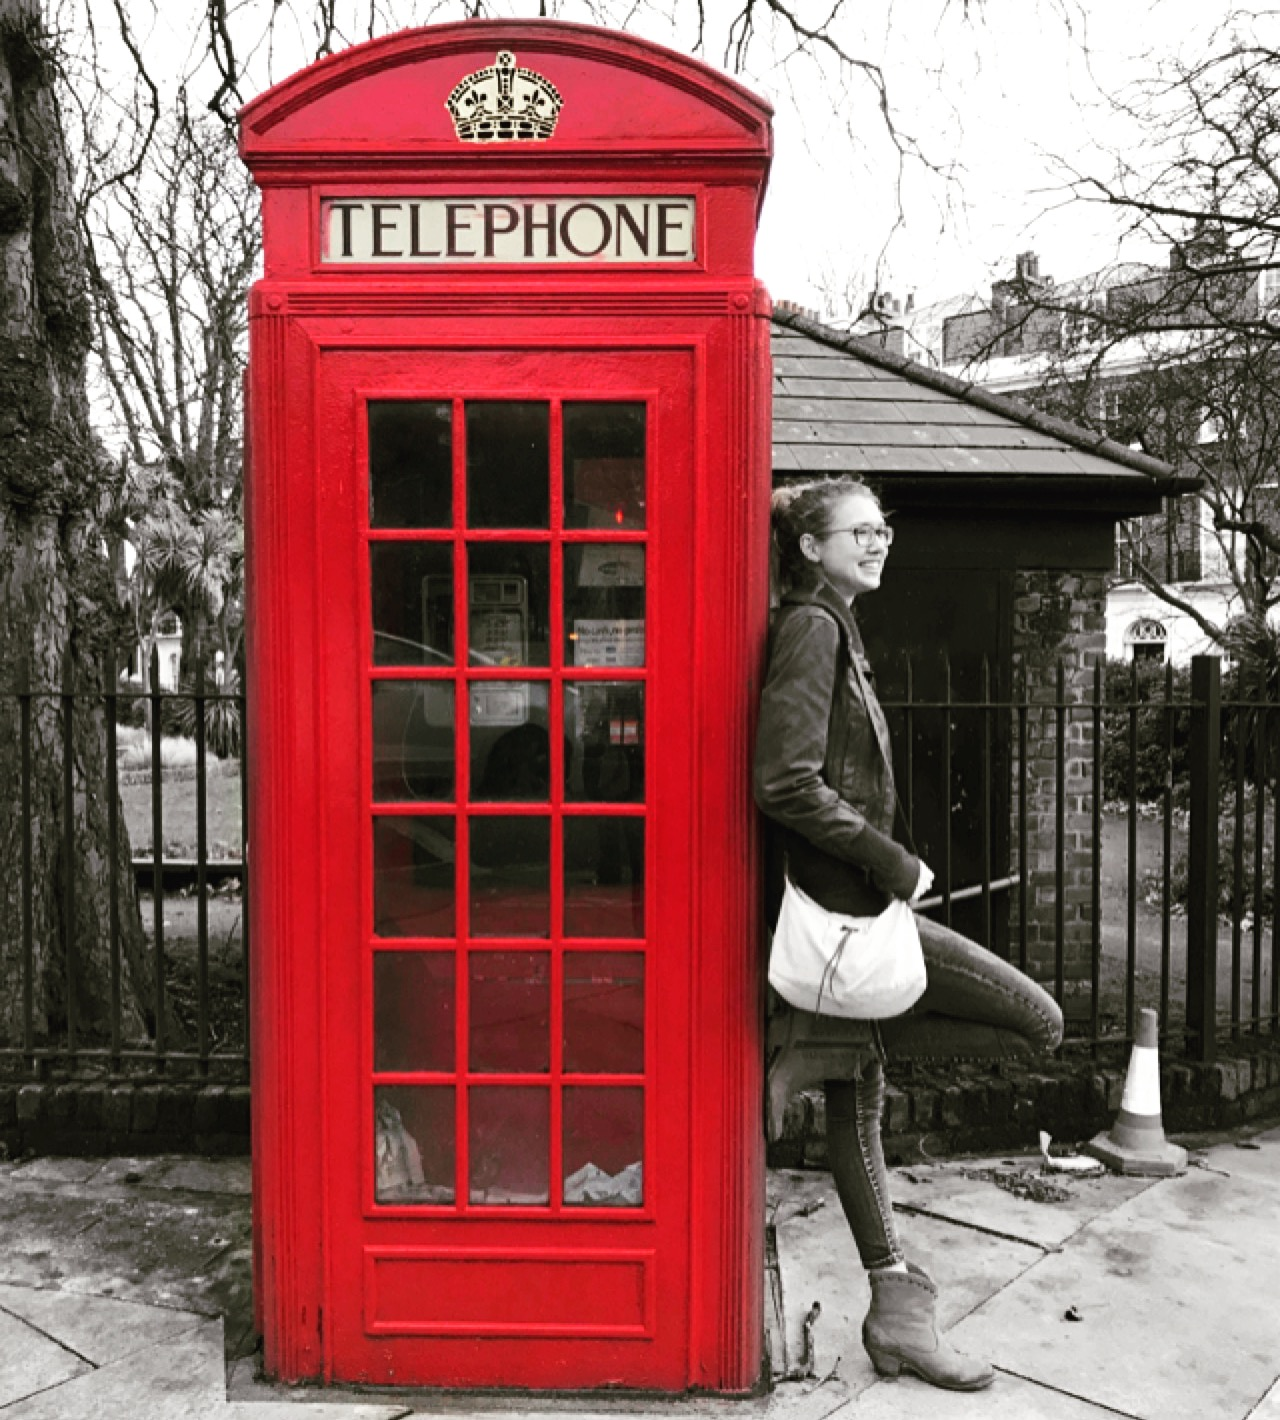 women leans against red telephone booth